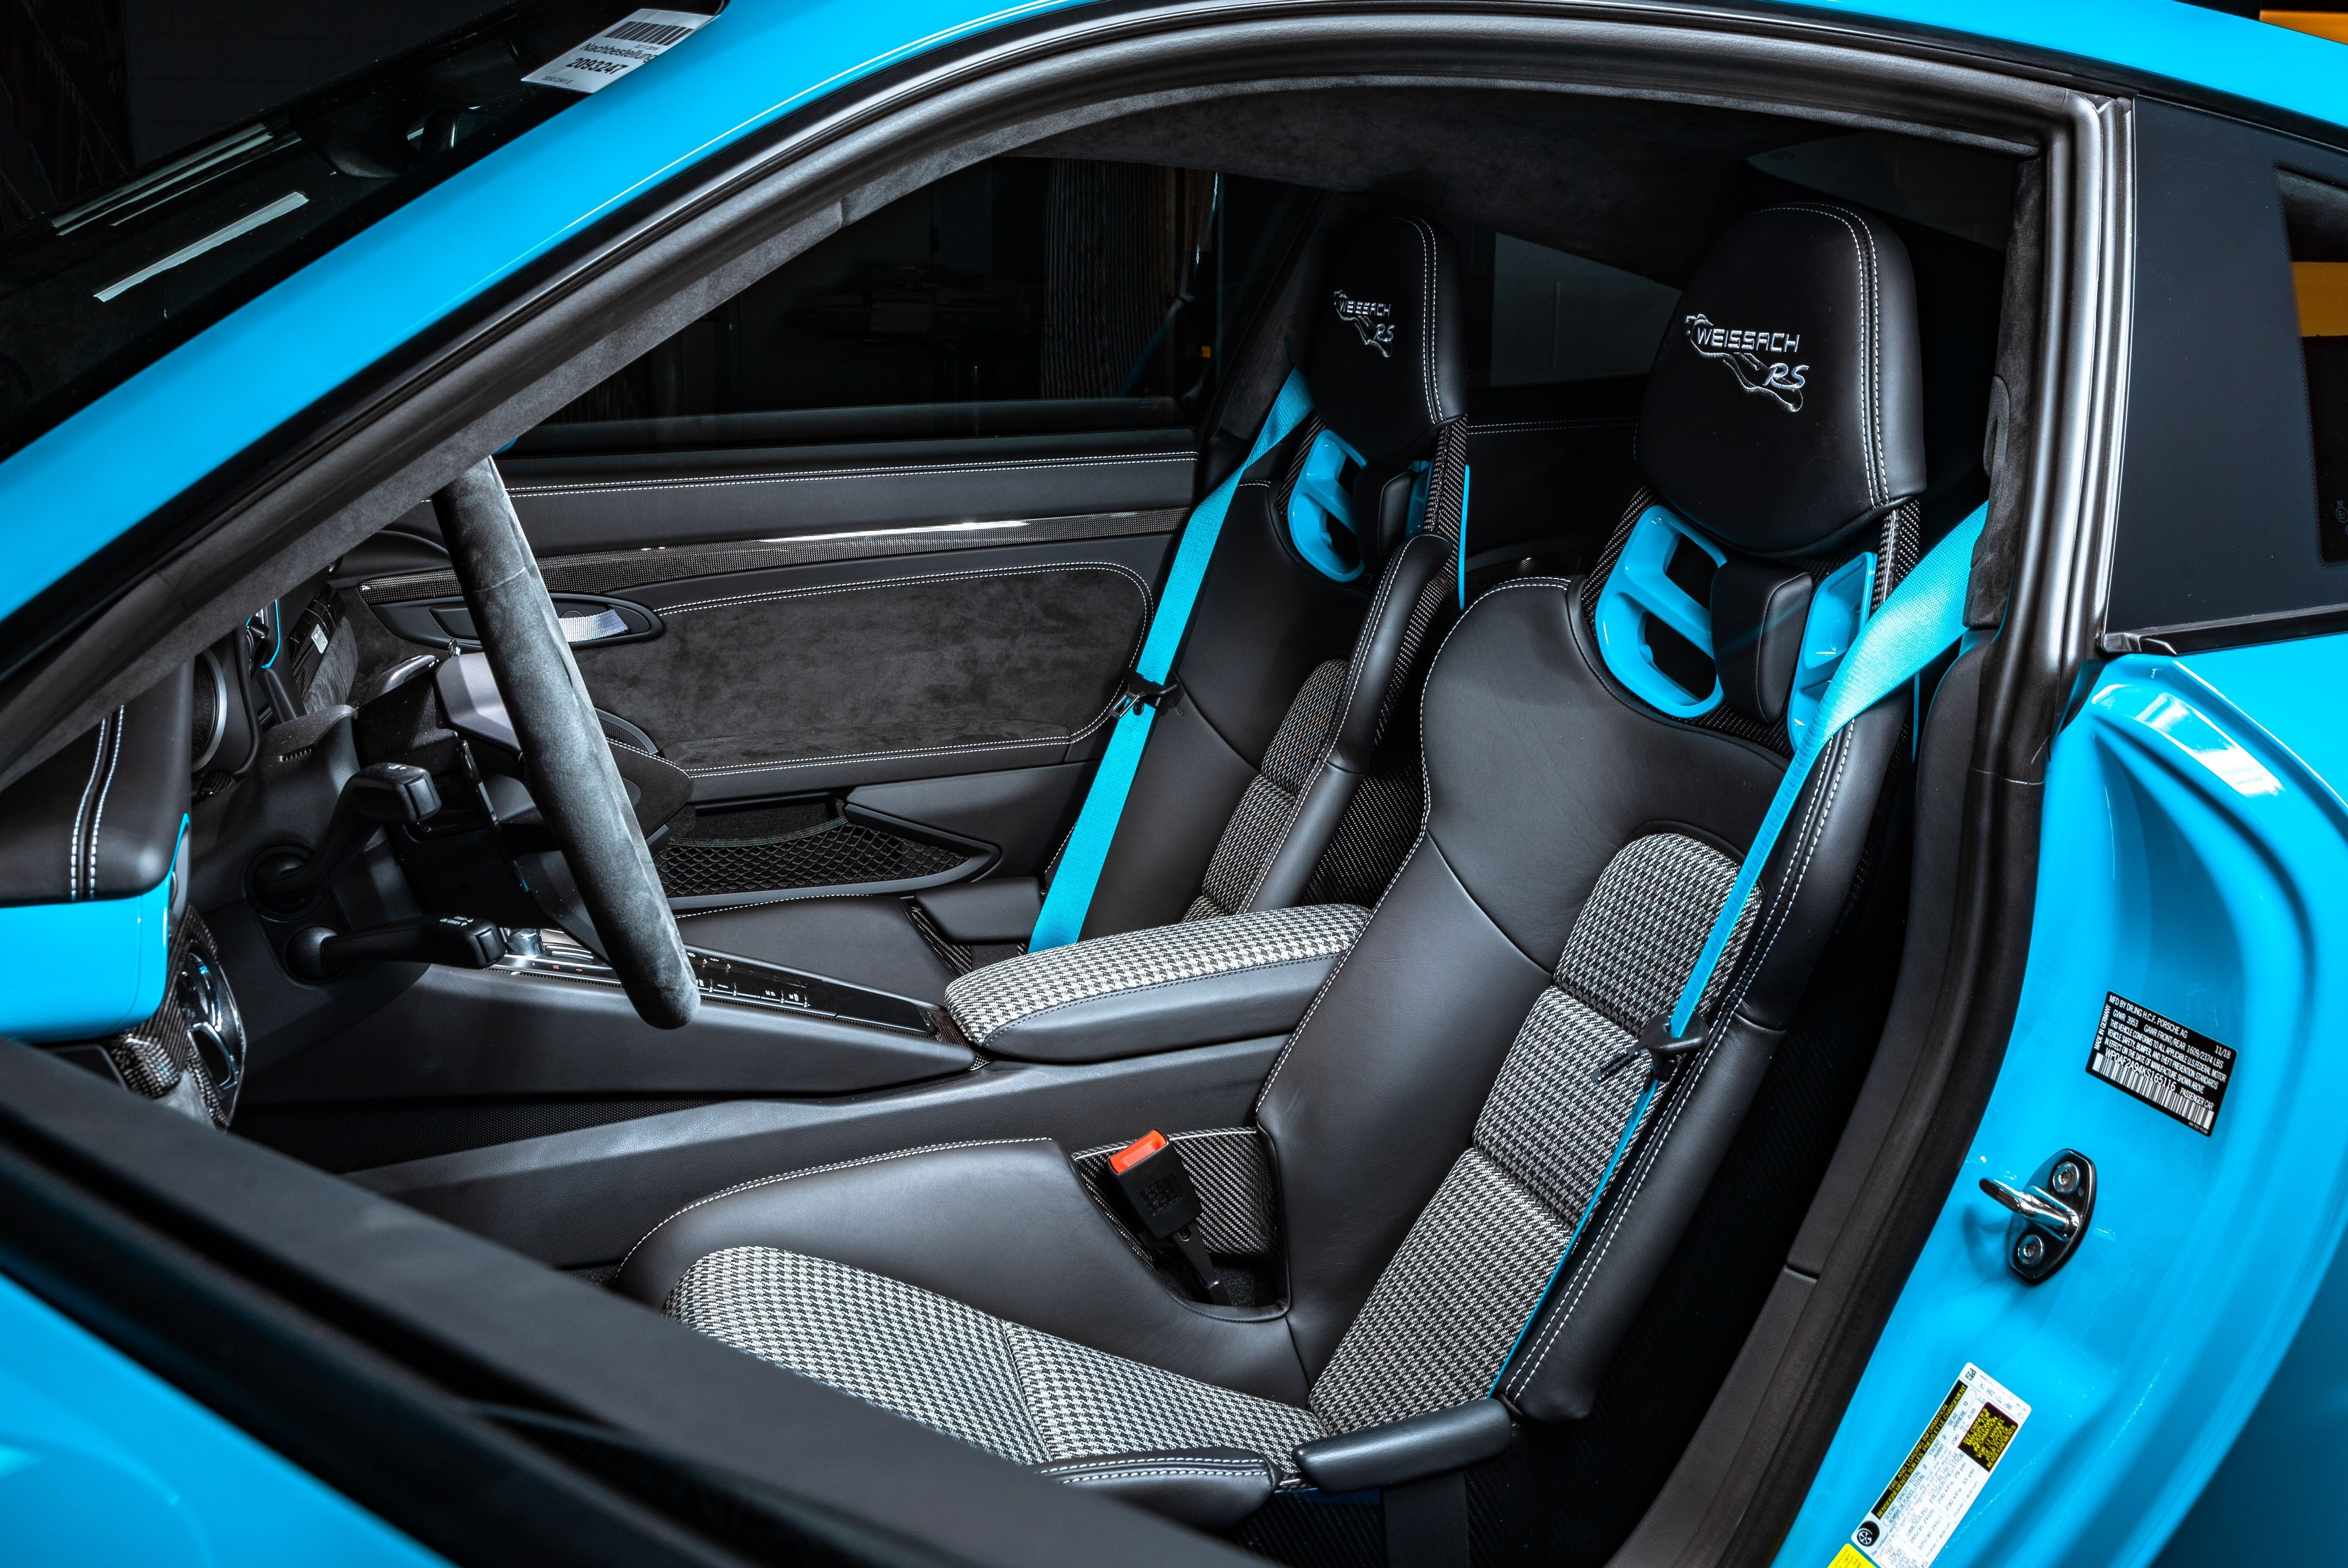 Special Wishes Interior Options On Our 2019 Porsche Gt3 Rs Porsche Gt3 Porsche Porsche Factory